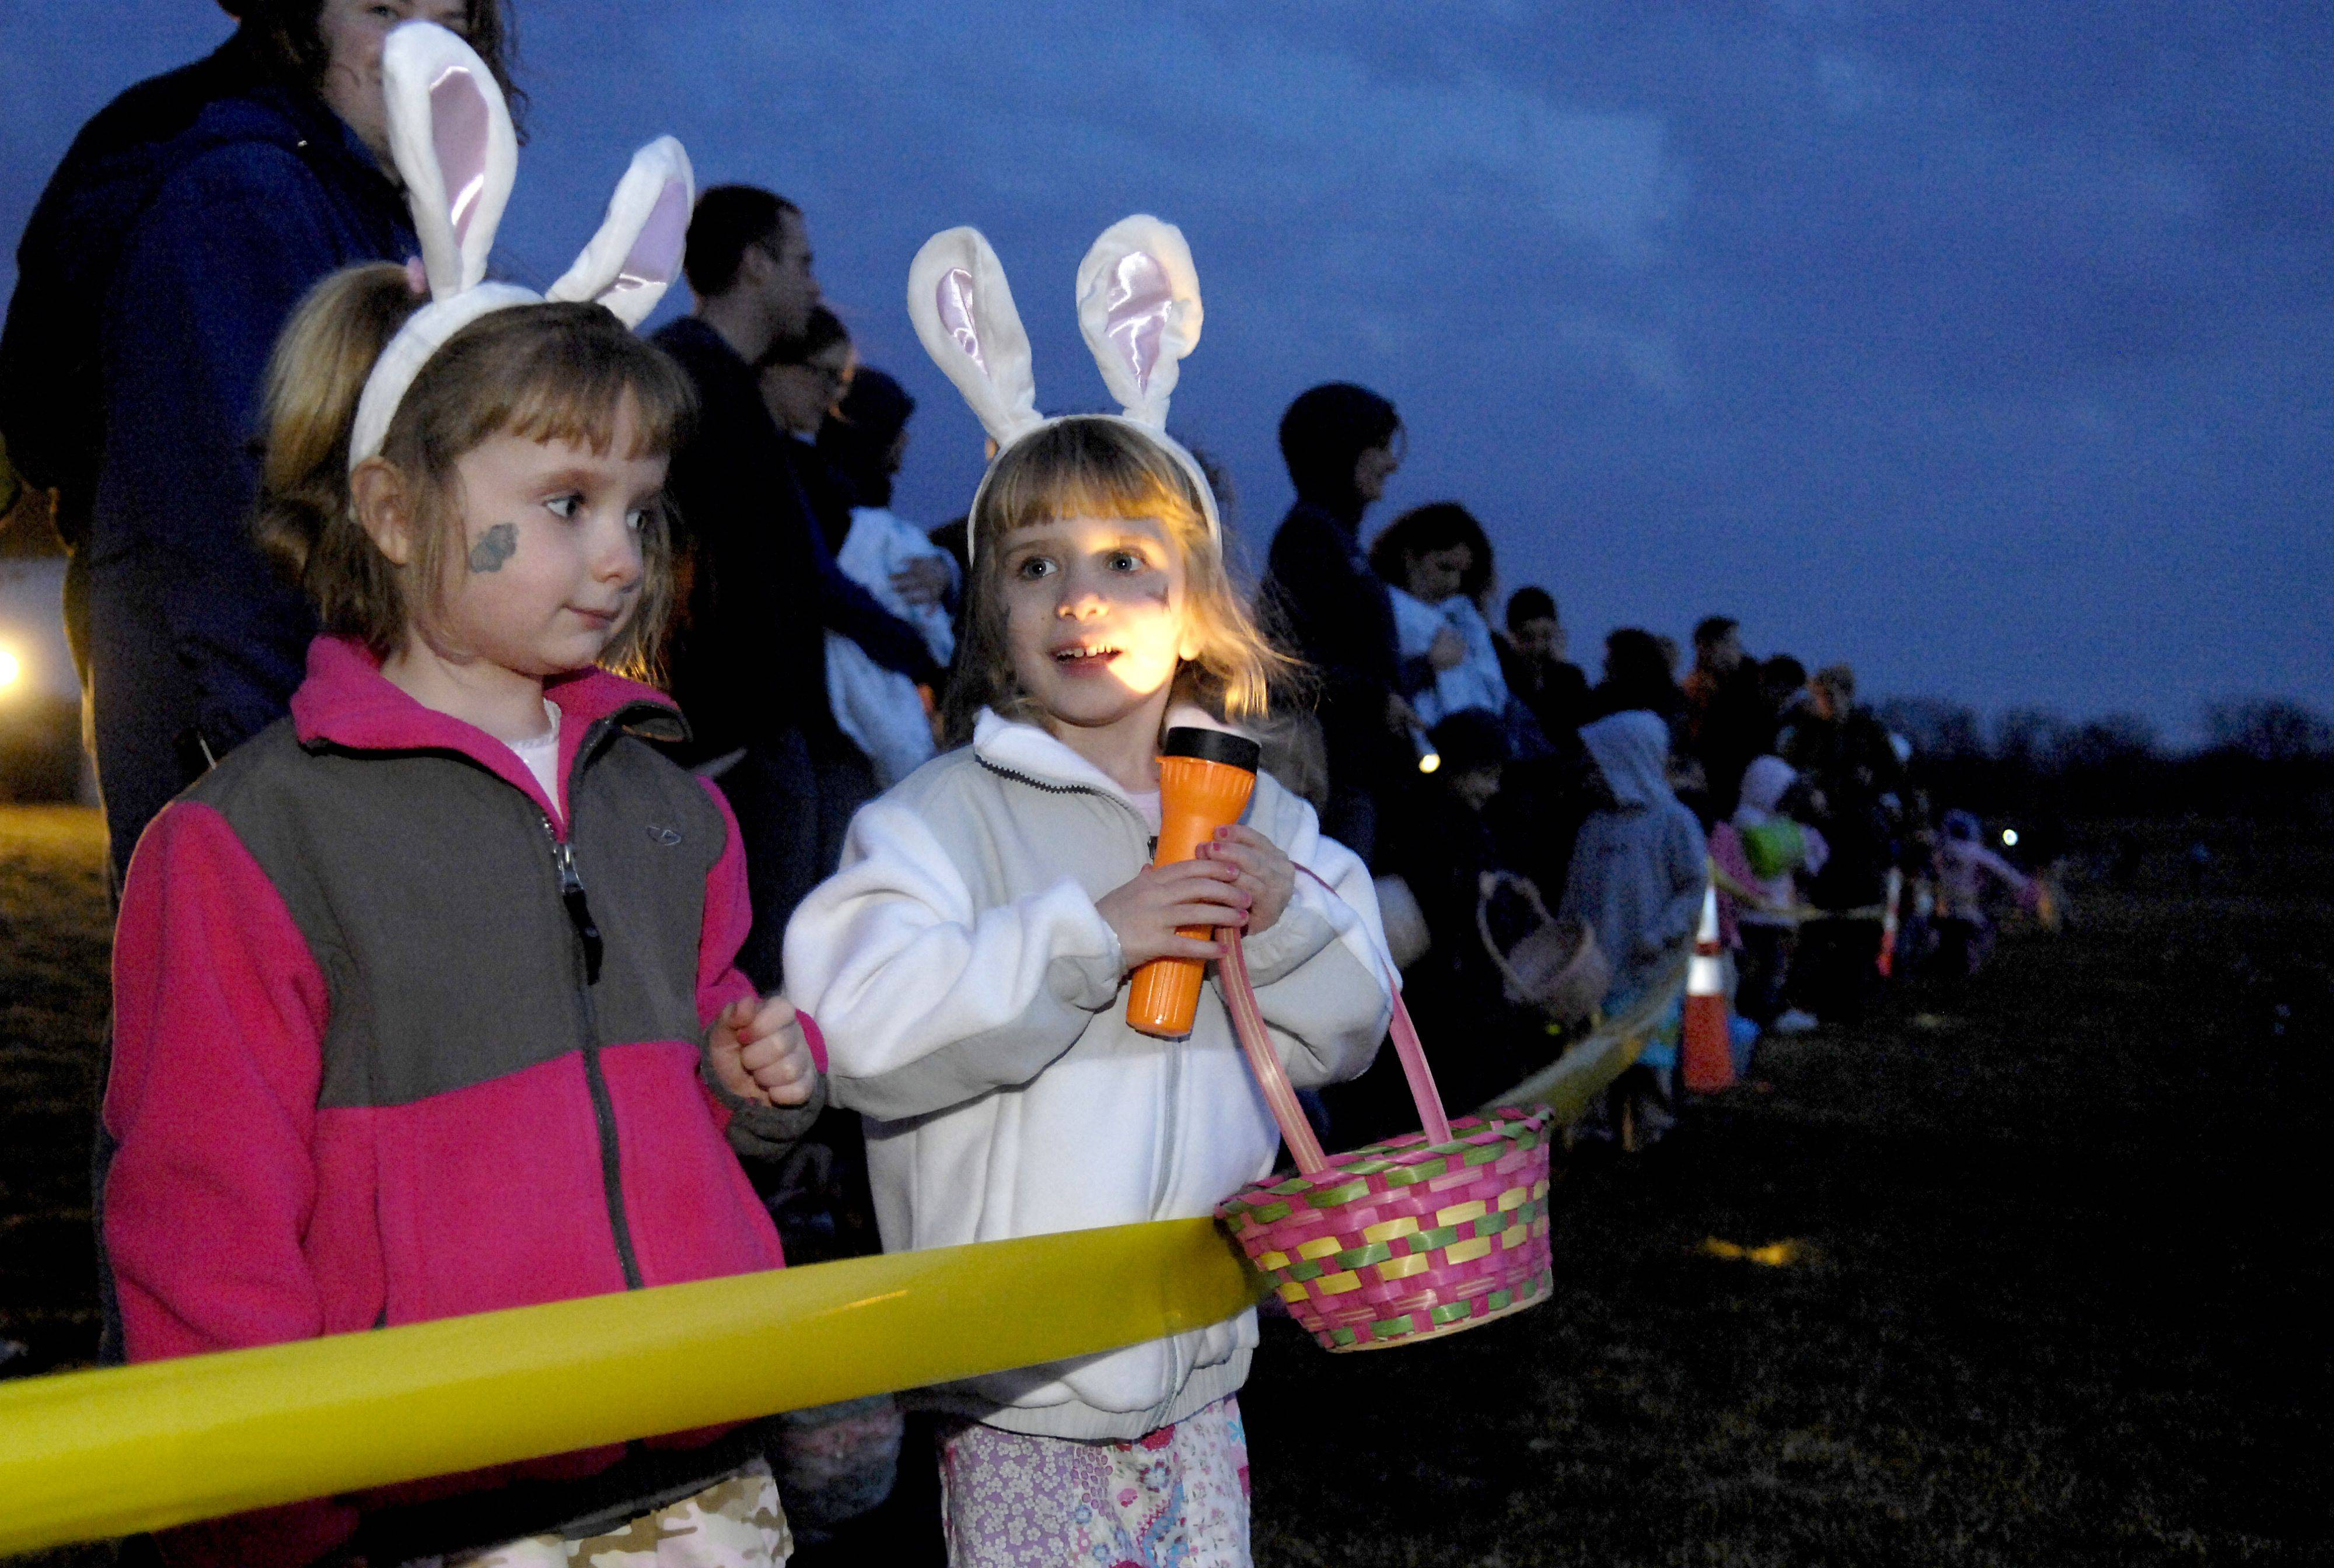 Laura Stoecker/lstoecker@dailyherald.com ¬ Easter basket? Check. Bunny ears? Check. Flashlight?! Annika and Zoe Kippley, 4, twins from Batavia, wait anxiously for the Batavia Easter egg hunt by flashlight to start at Prairie Path Park on Friday, March 19. Kids aged 2-8 were let loose at 7:30 to hunt down their eggs.